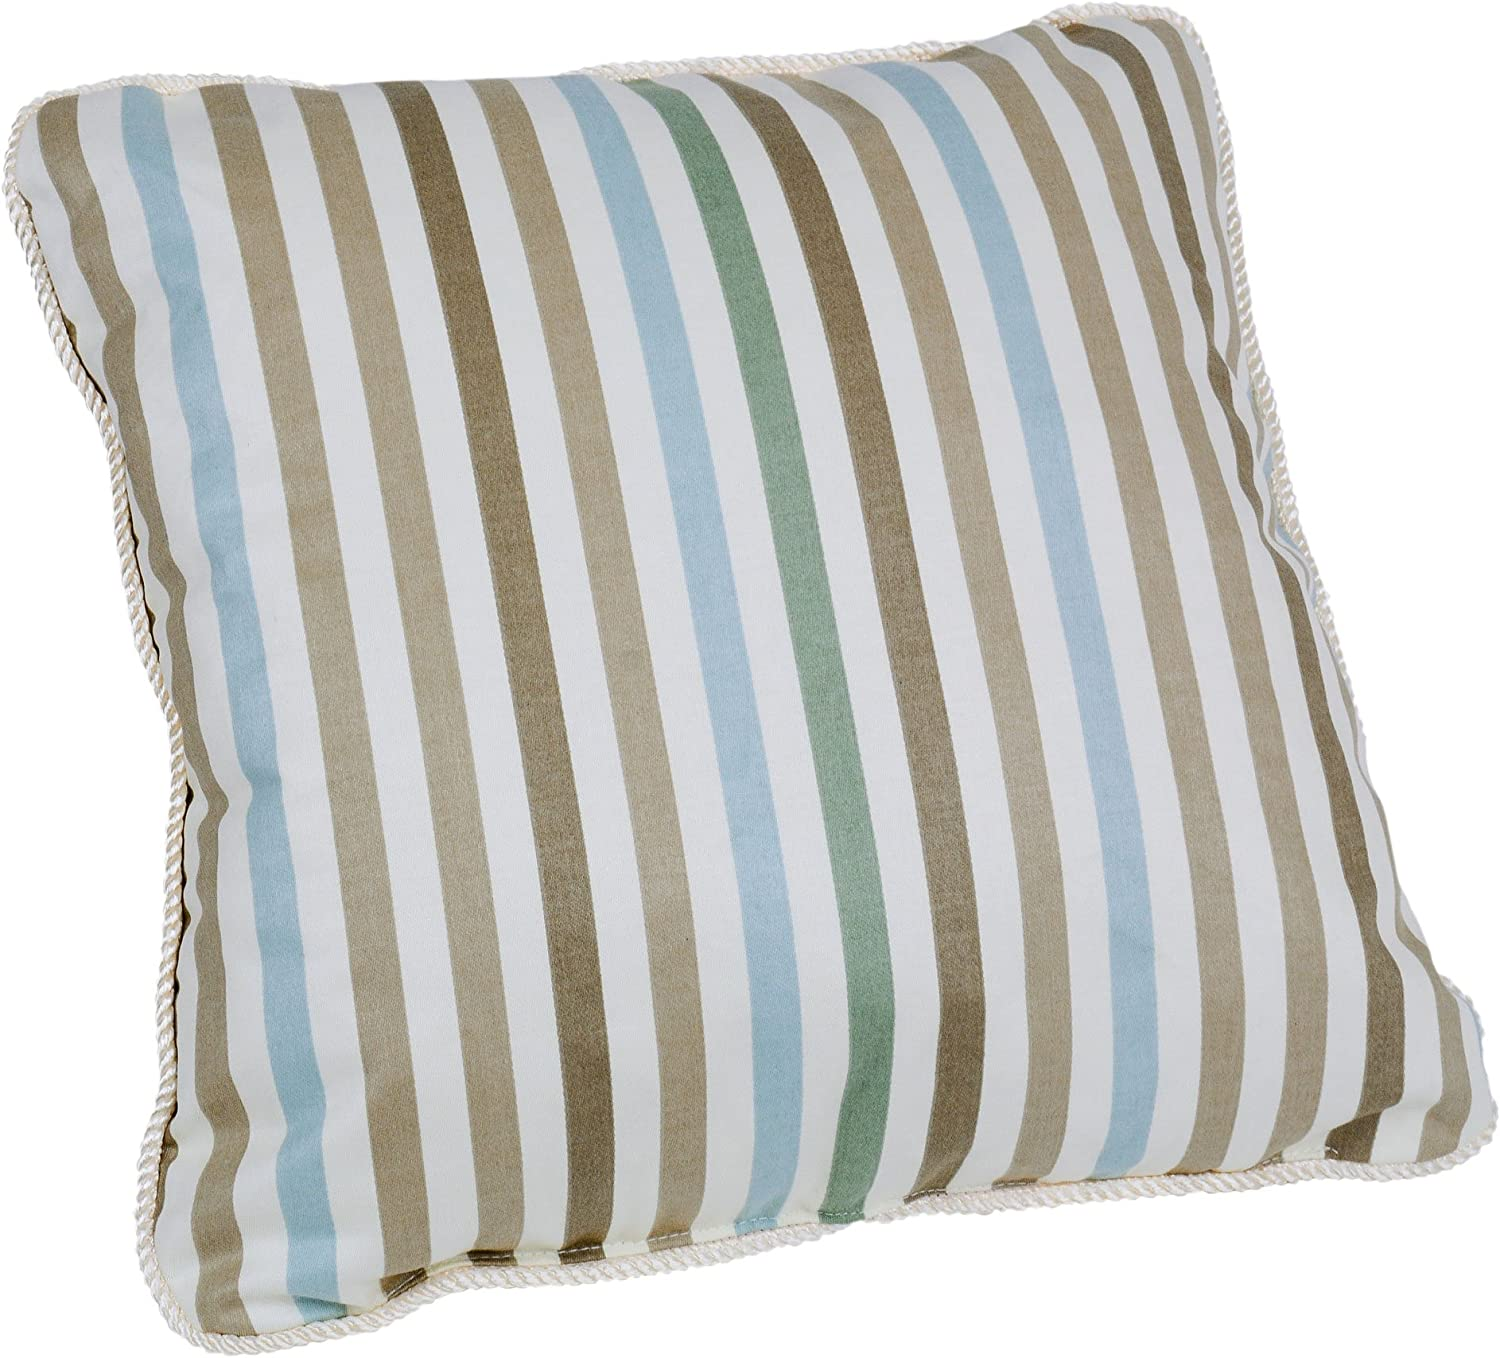 Ellis shipfree Curtain Line-Up Stripe Print Toss L Pillow 17 Colorado Springs Mall 17-Inch by